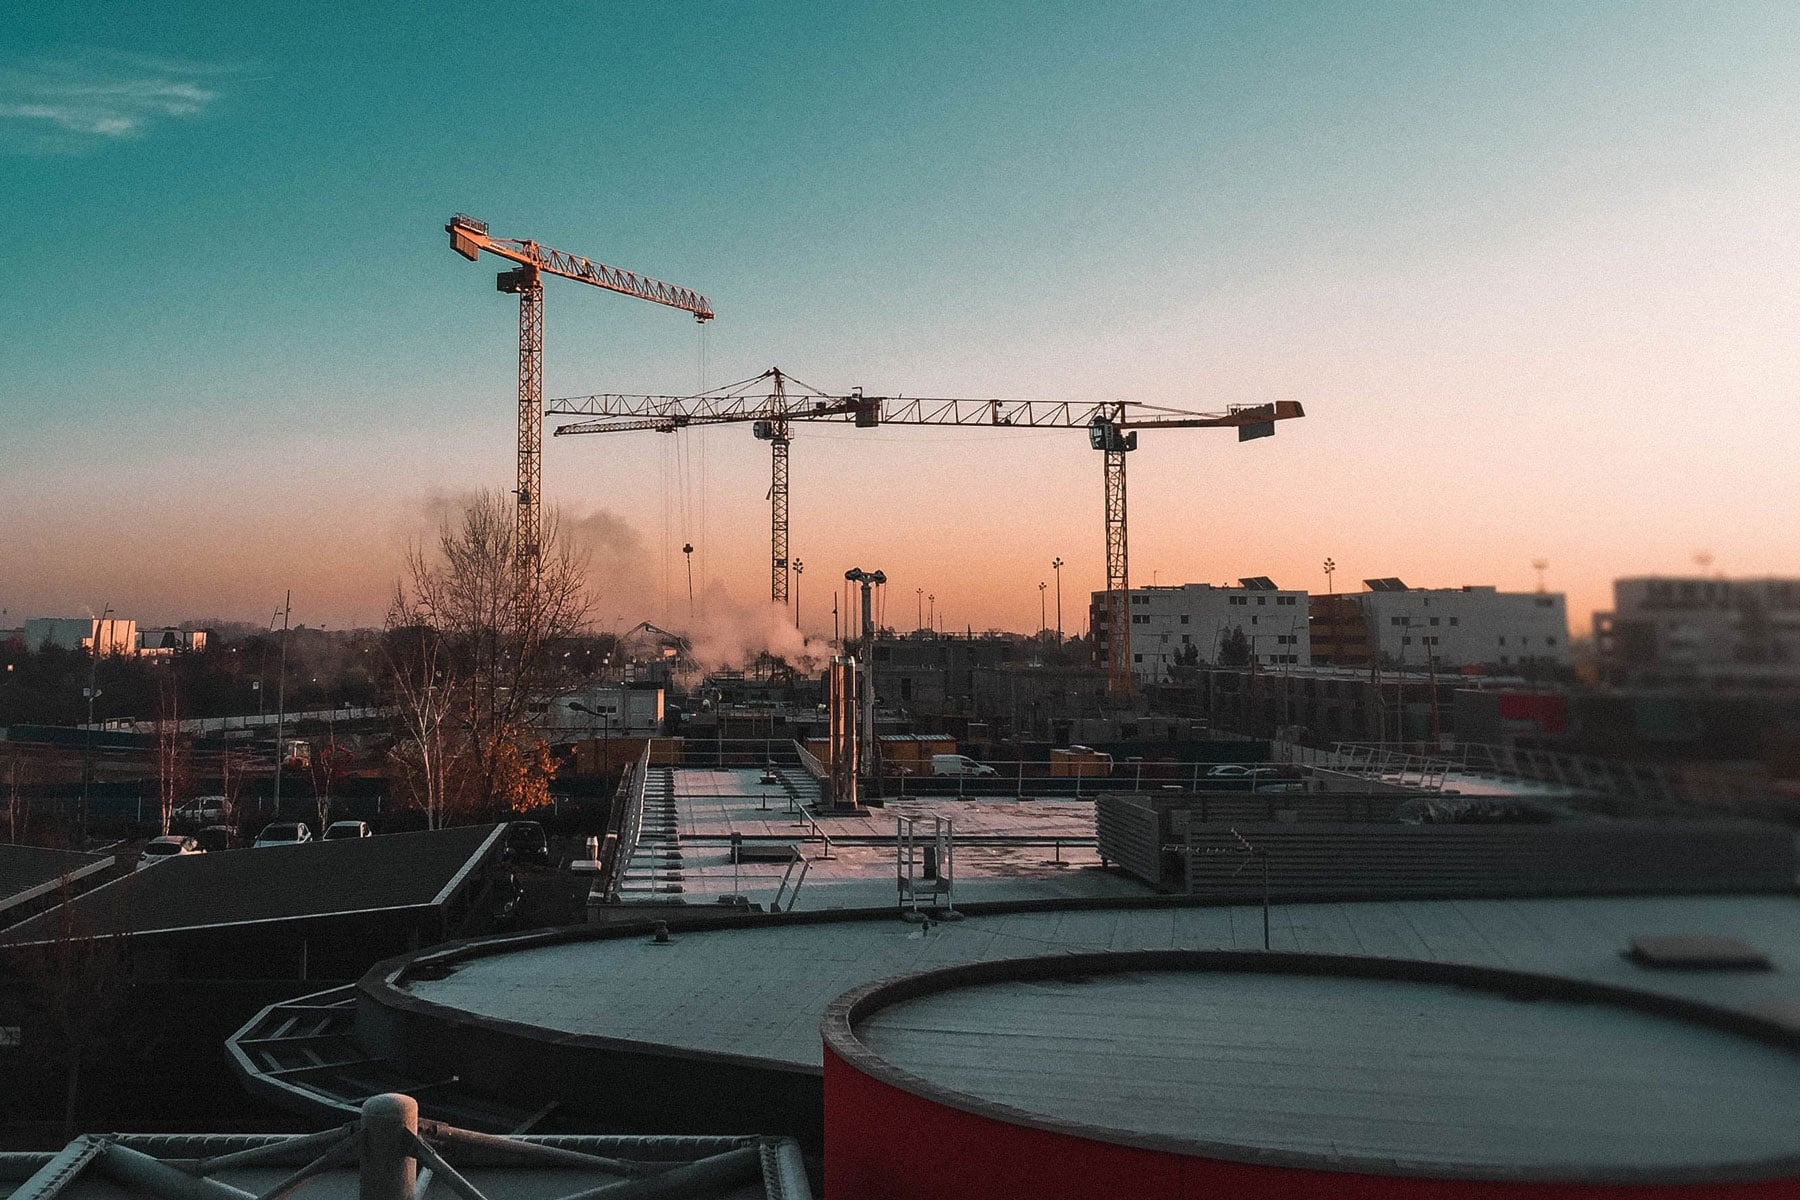 cranes working on a large construction project